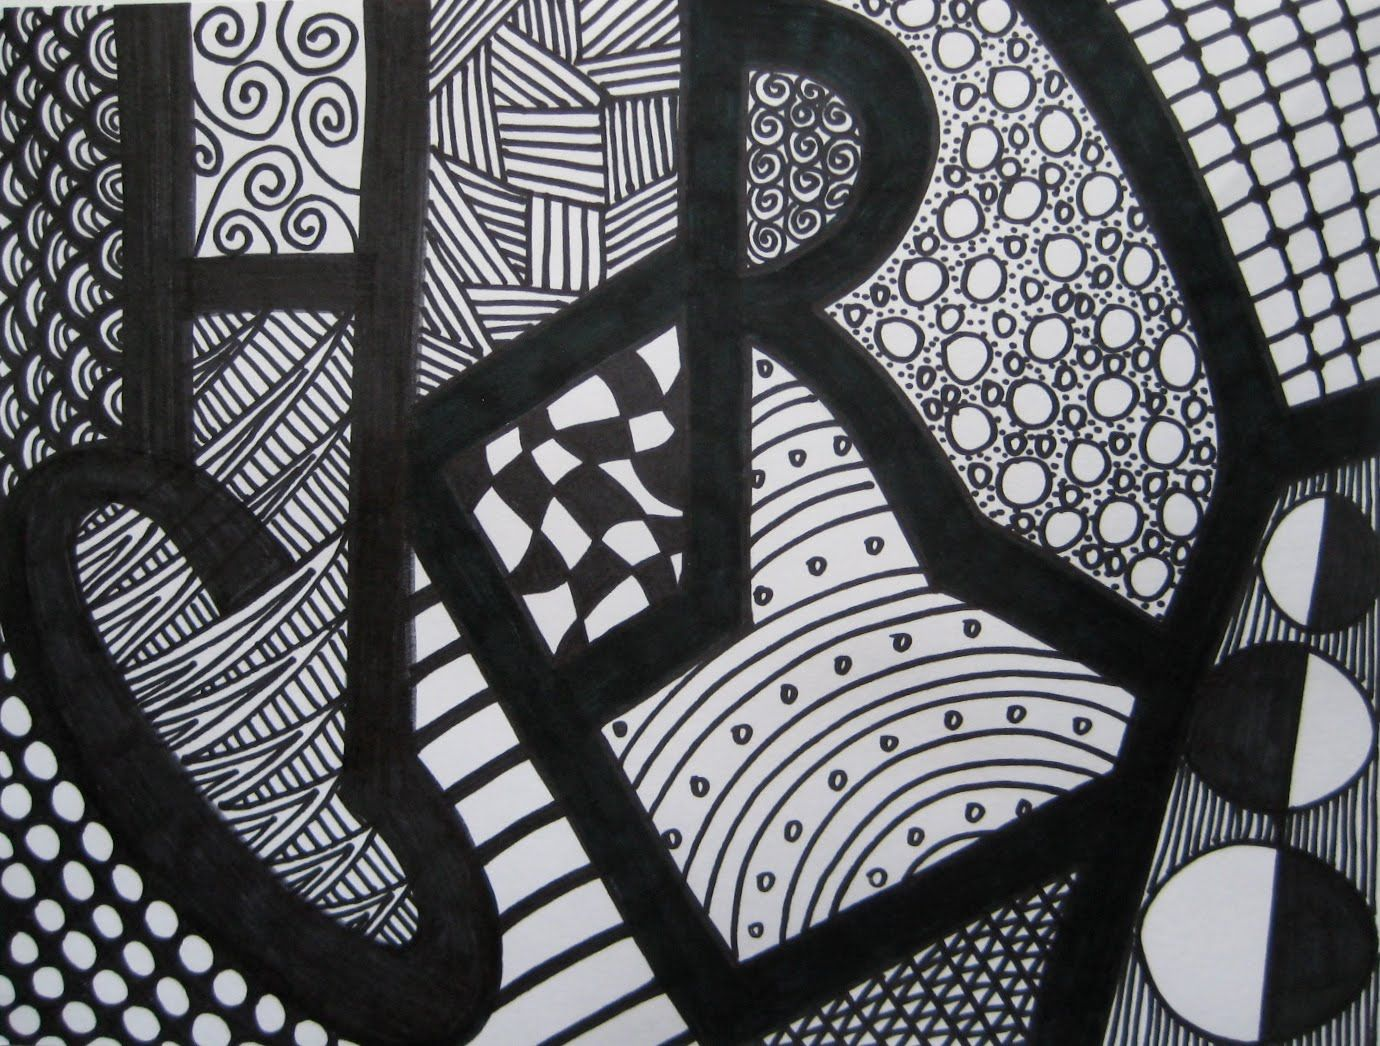 Uncategorized Cool Name Drawings name tangles google search and zen pinterest are a fun way to create cool design using your or another word of choice names great theme for th